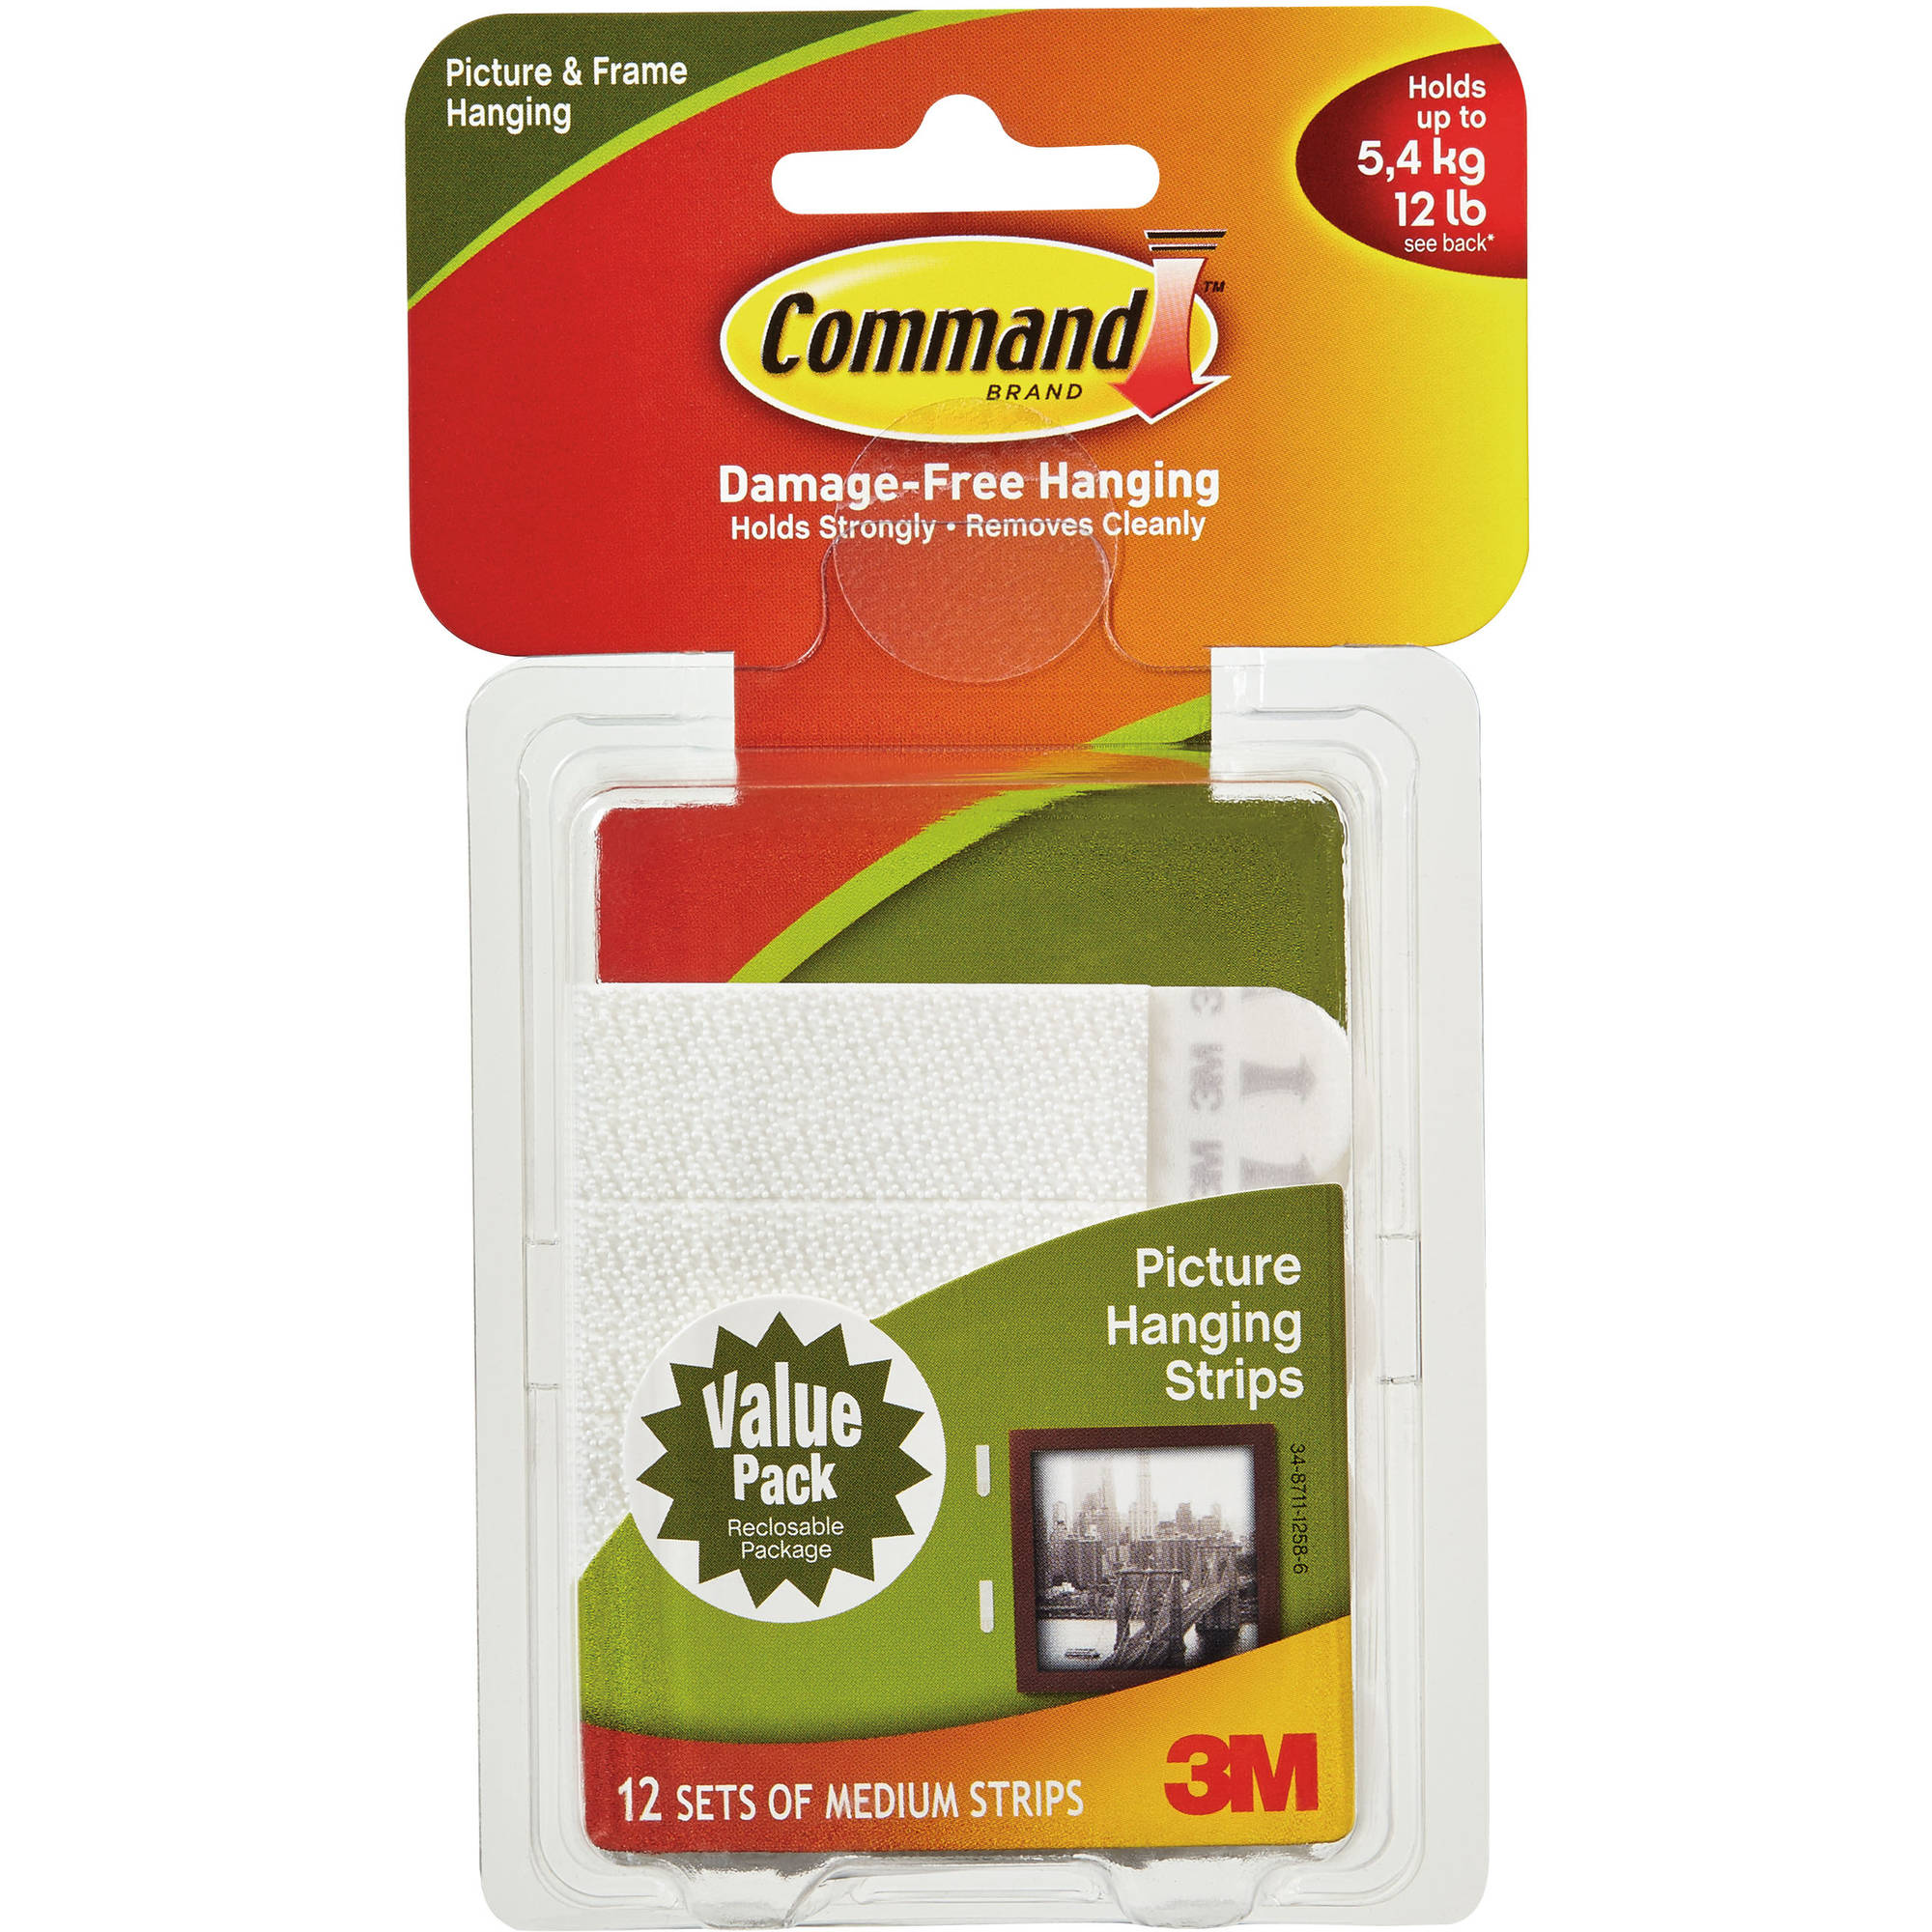 Command Medium Picture Hanging Strips, White, 12 Sets of Strips, 17204-12PK